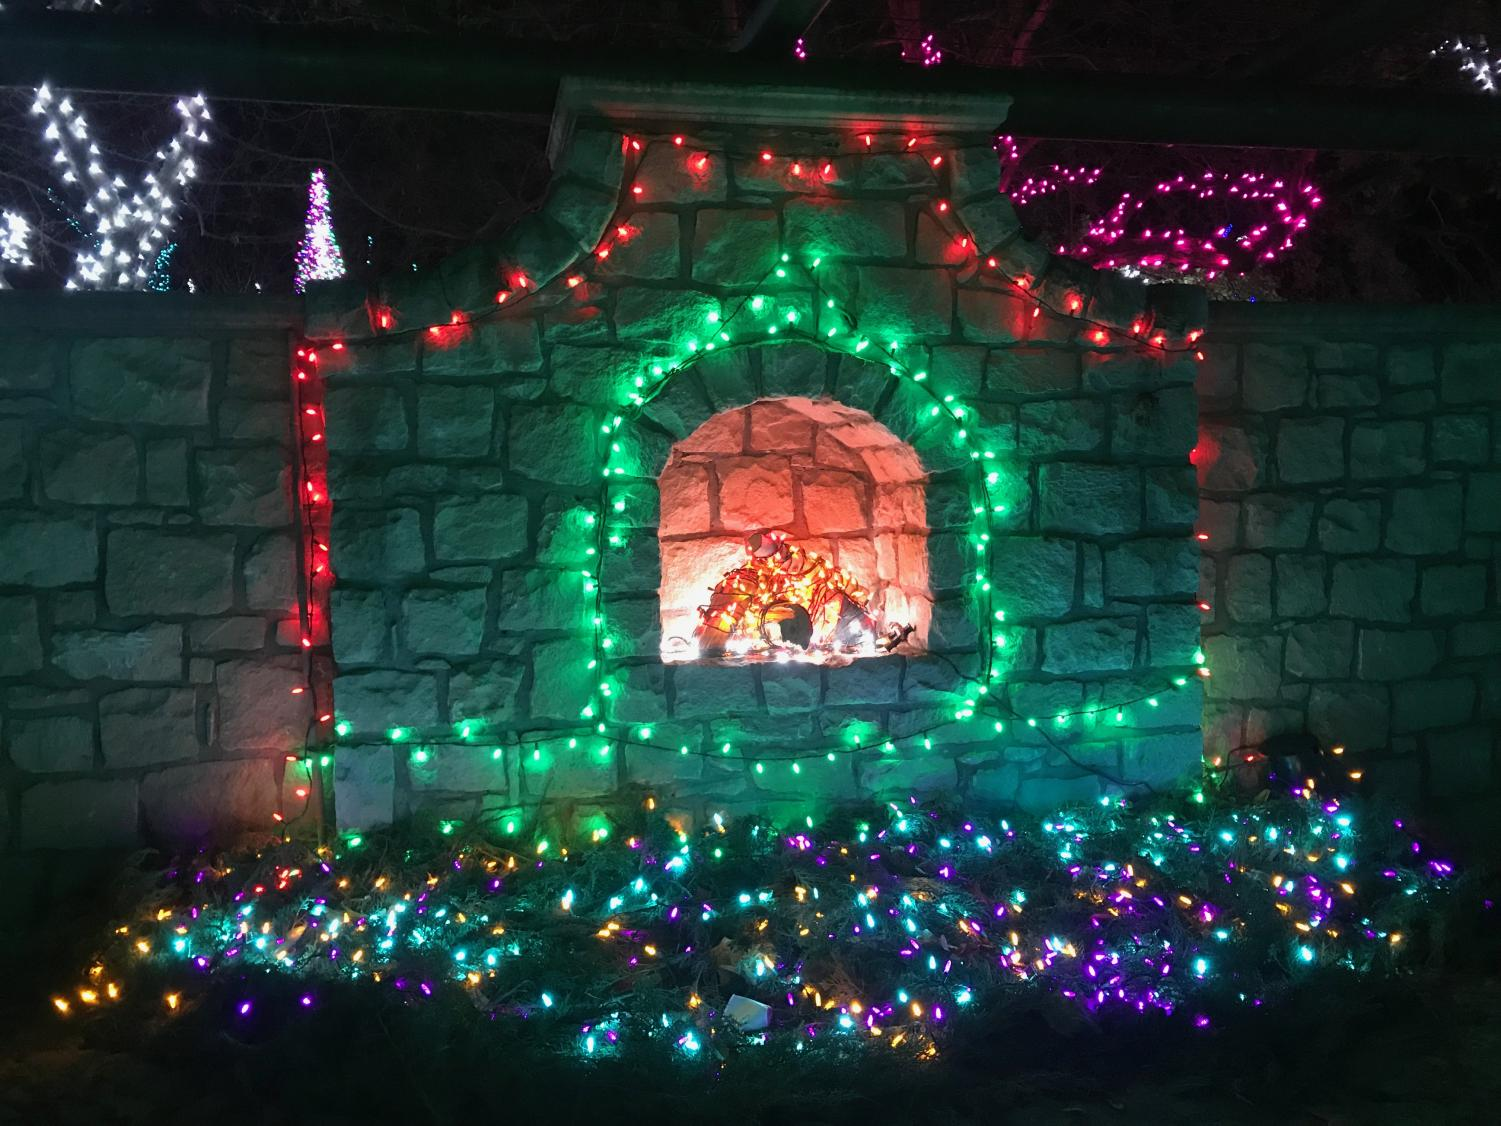 One of the beautiful glowing displays at the 2018 Winter Garden aGlow depicting a fake fireplace sparkling in the moonlight.